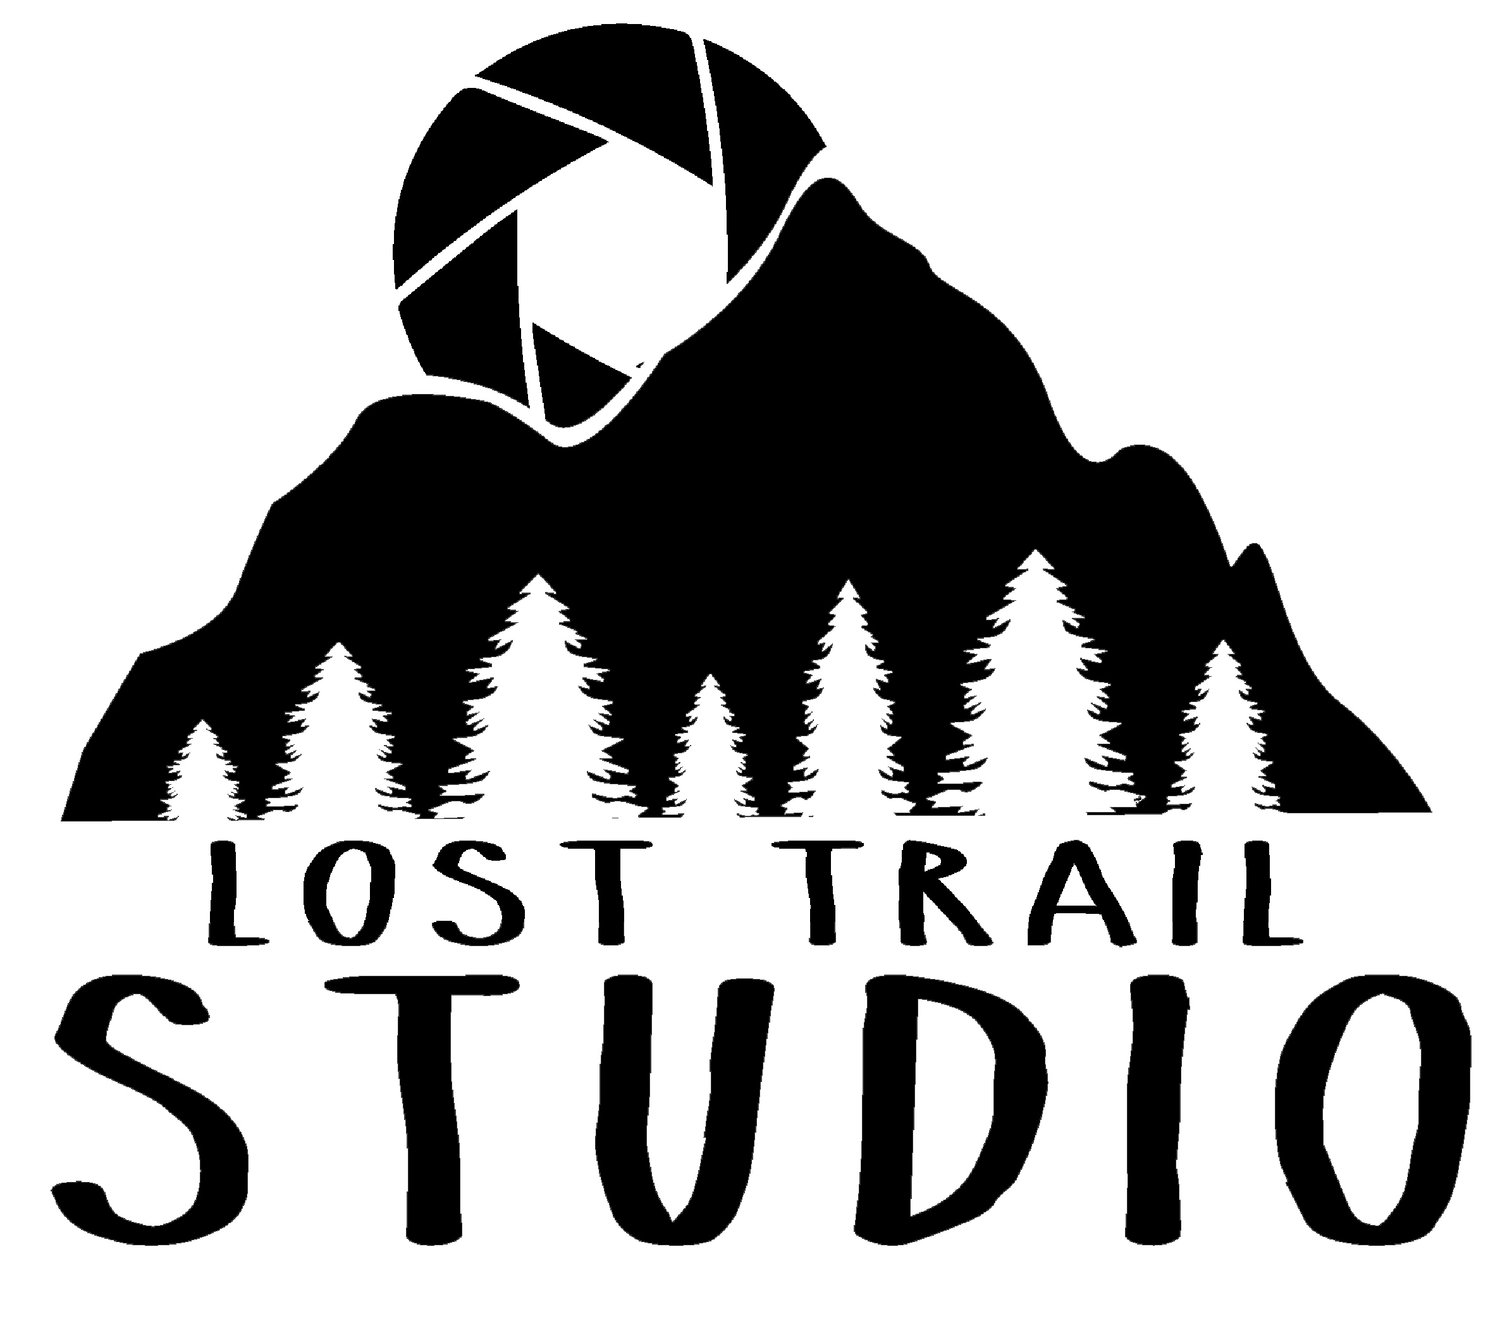 LOST TRAIL STUDIO